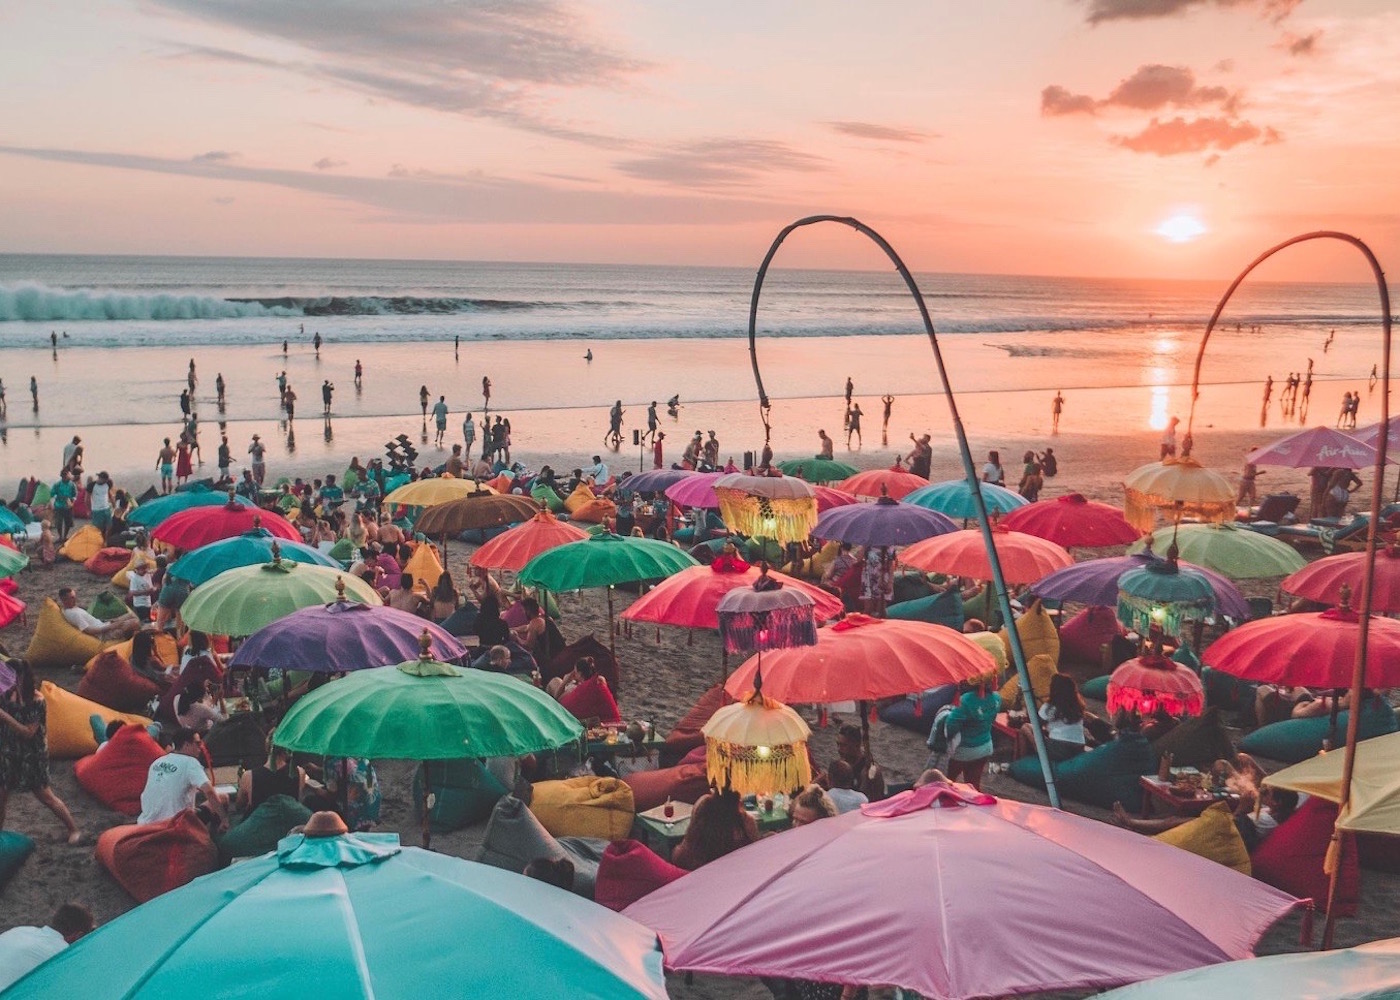 https://d22ir9aoo7cbf6.cloudfront.net/wp-content/uploads/sites/4/2019/07/La-Plancha-Sunset-Bar-on-Seminyak-Beach-Bali-Indonesia.jpg